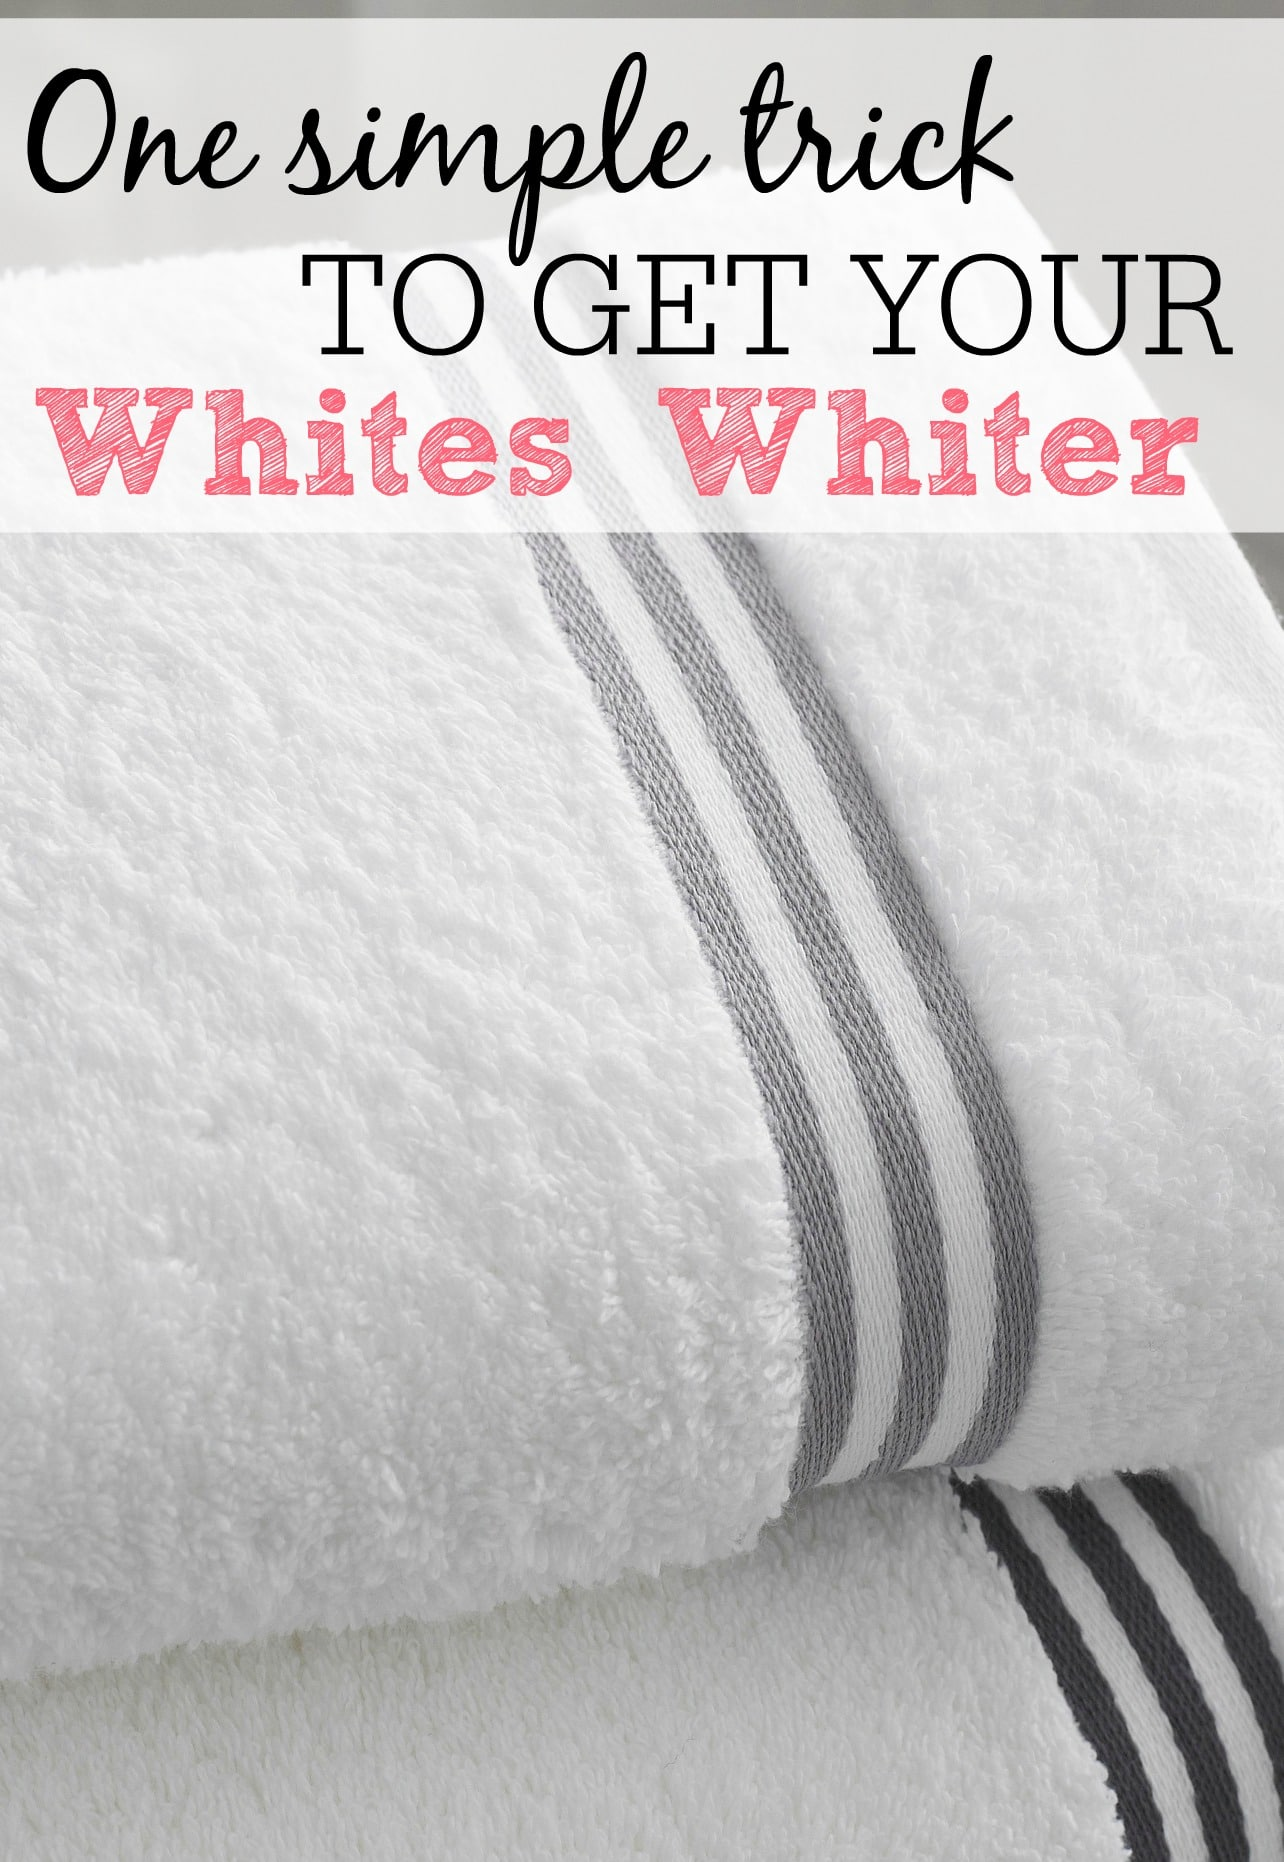 one simple trick to get your whites whiter